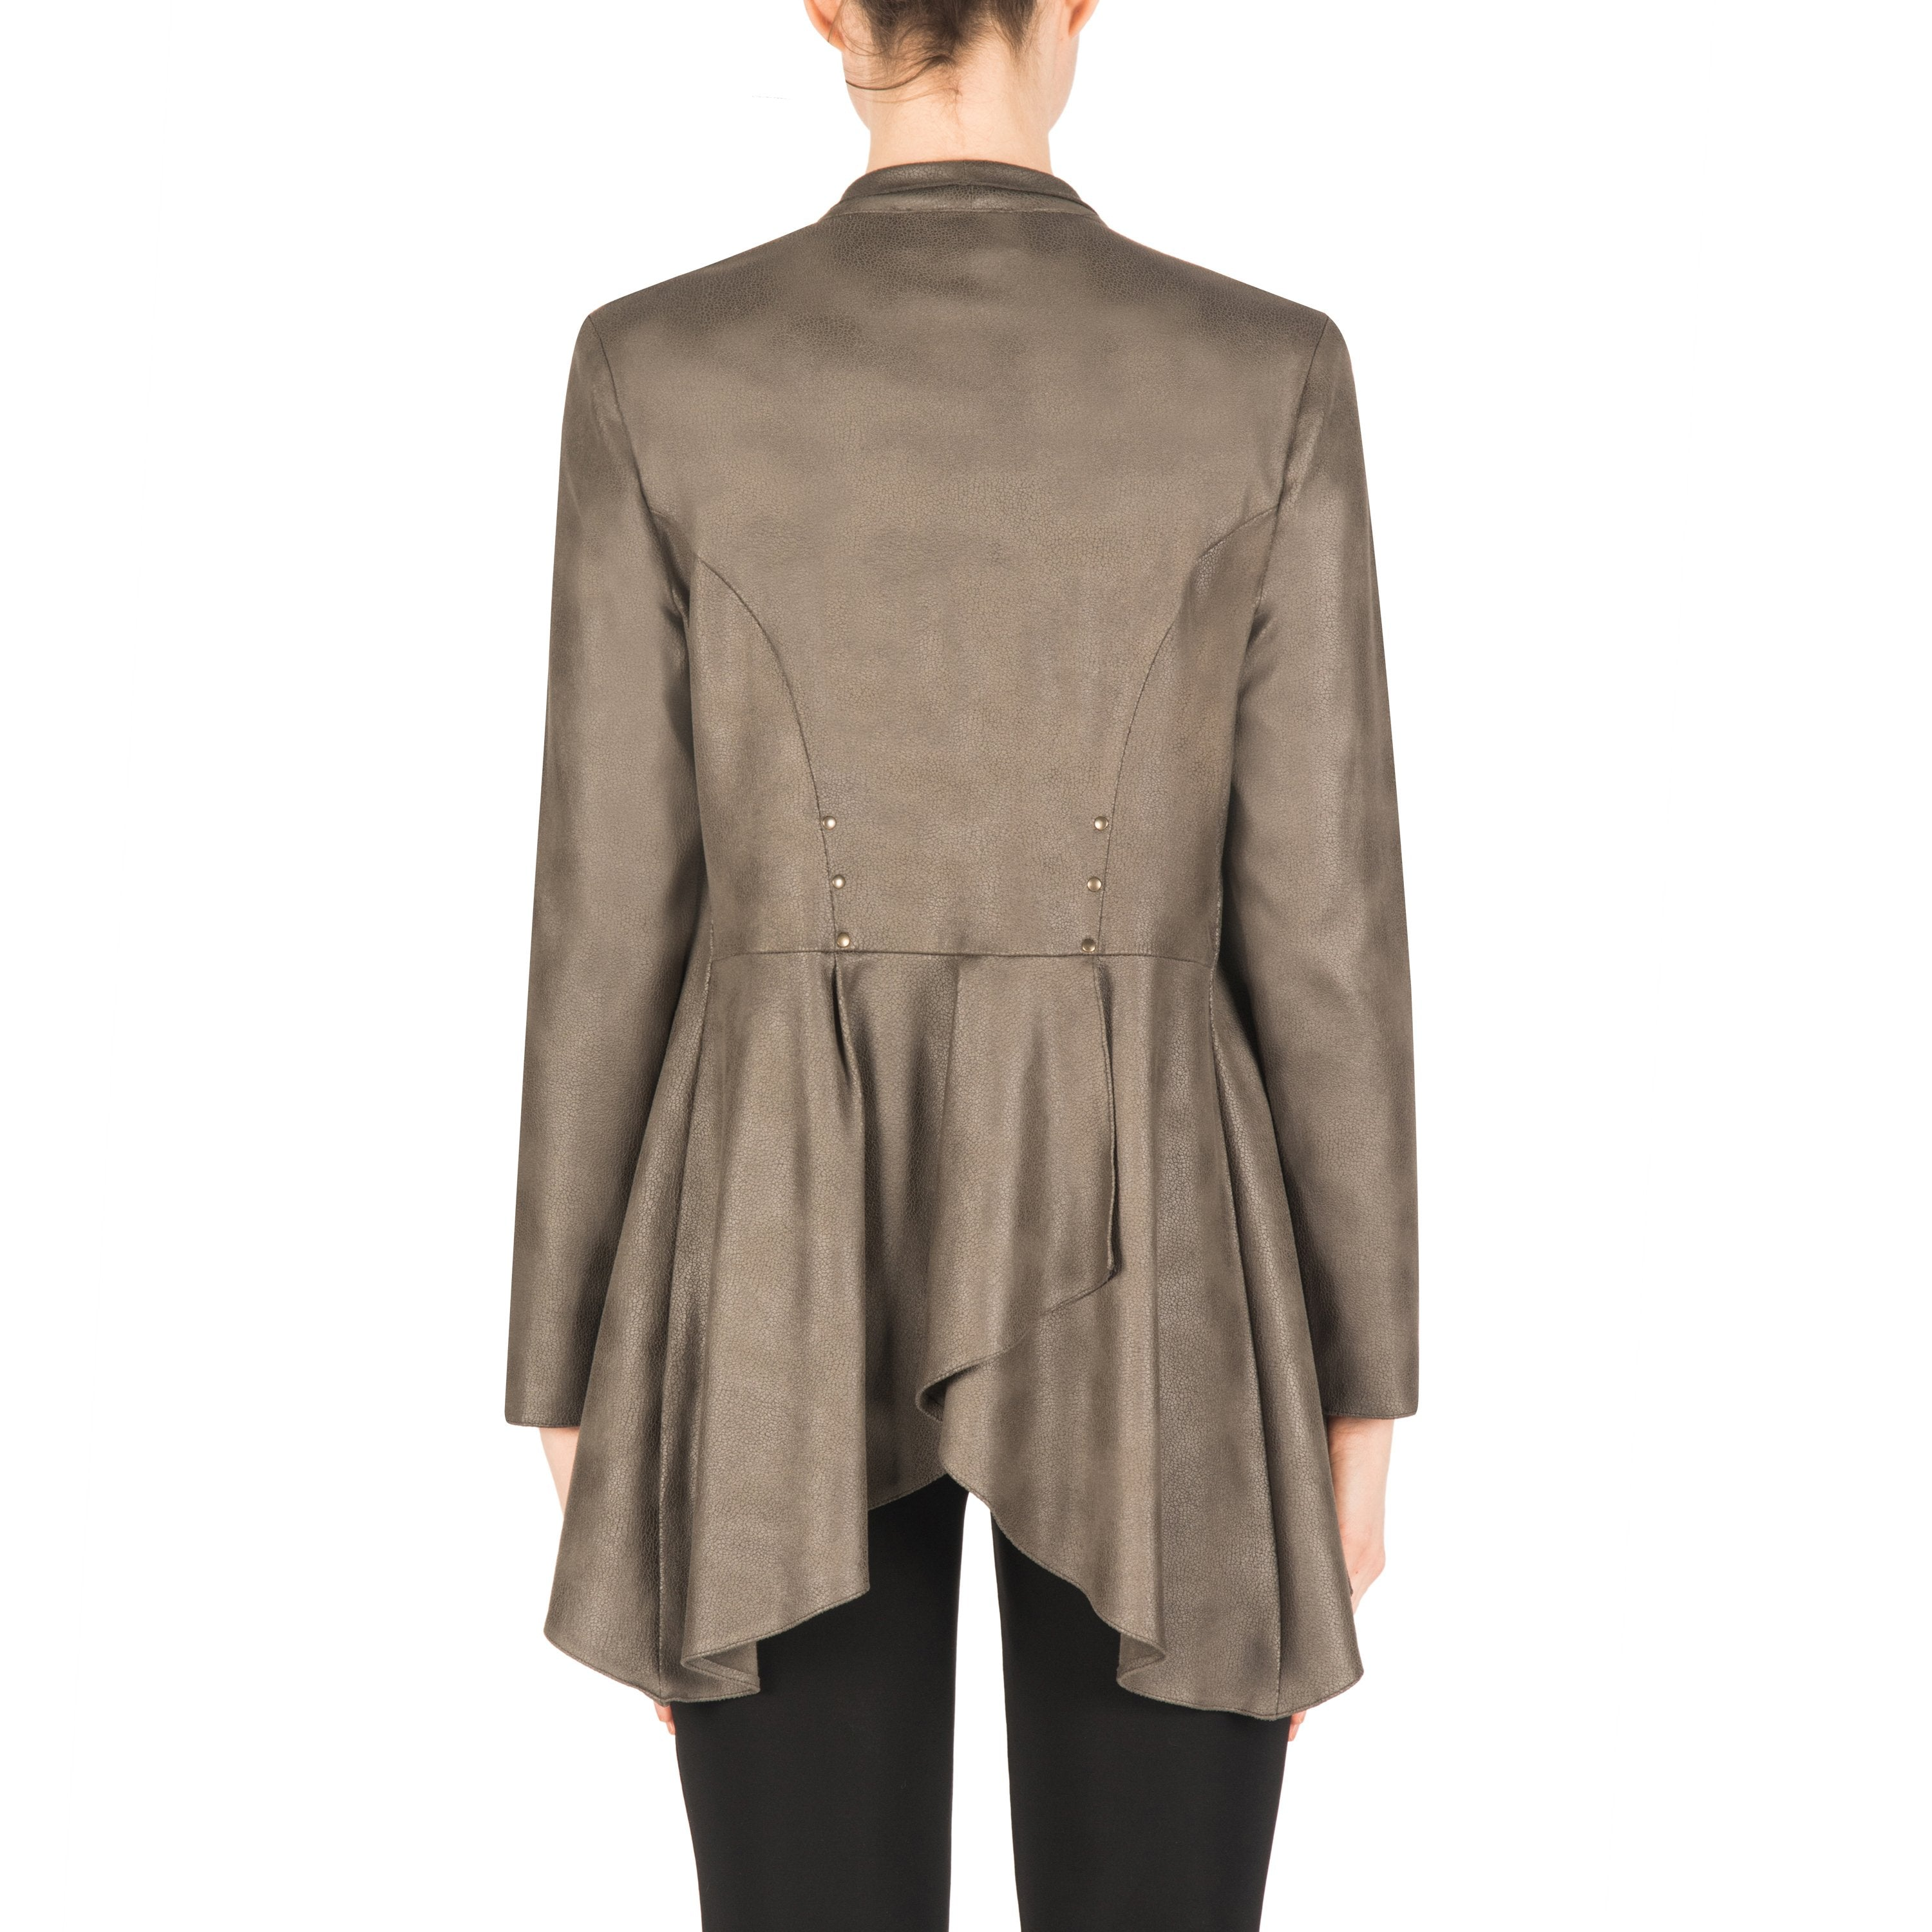 Image of Joseph Ribkoff Cover Up Style 183473 Best Price On Sale